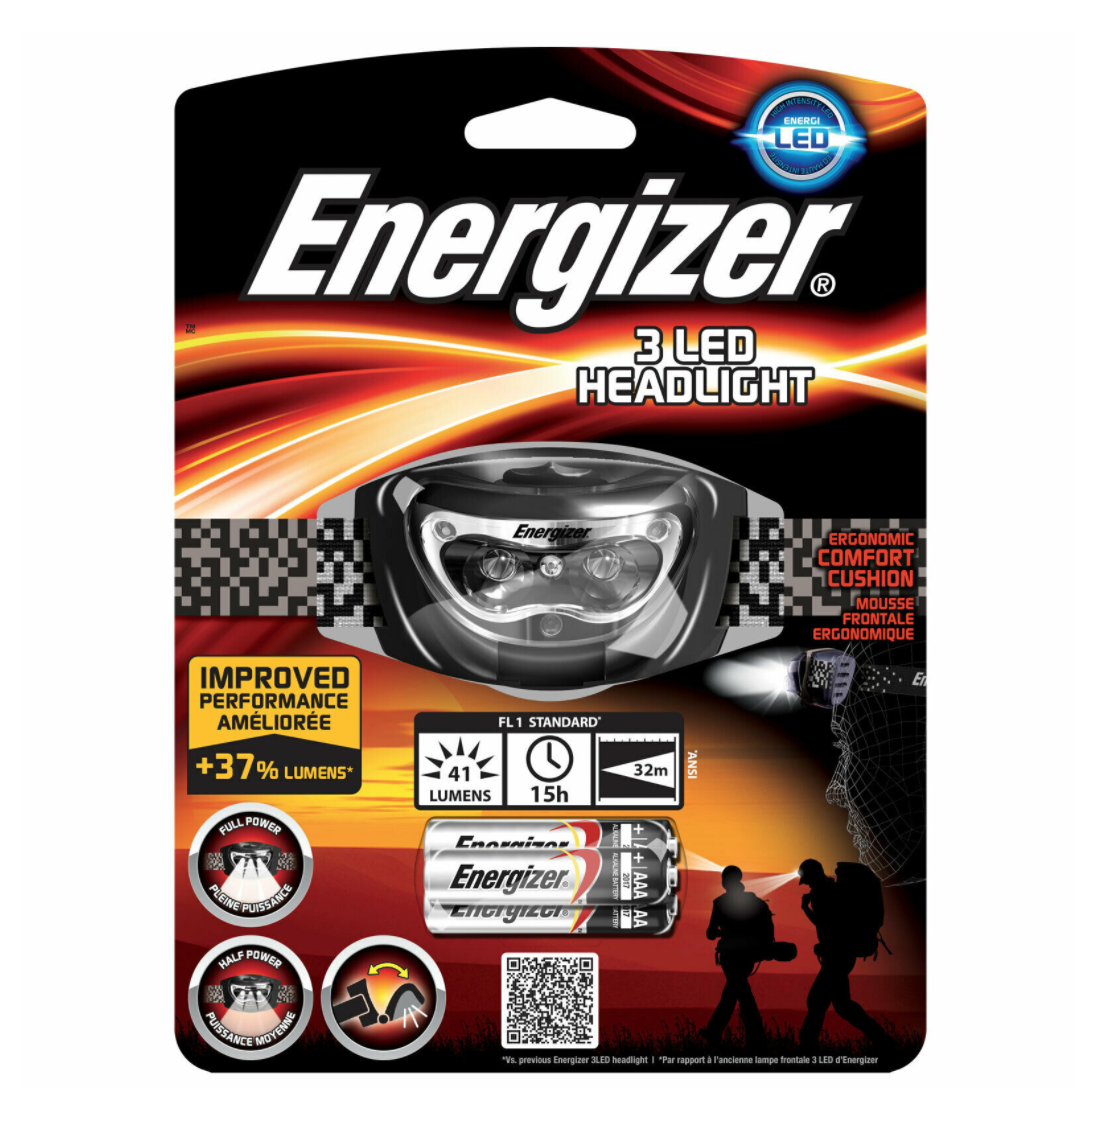 ENERGIZER LAMPE FRONTALE SPELEO ALPINISME PEXHE CHASSE LED LOT SET PACK PRO BRICOLAGE MECANIQUE GRAFFITI SECURITE HOME  PORTABLE SHOP ETUDE 7638900242294 COMASOUND KARTEL CSK ONLINE